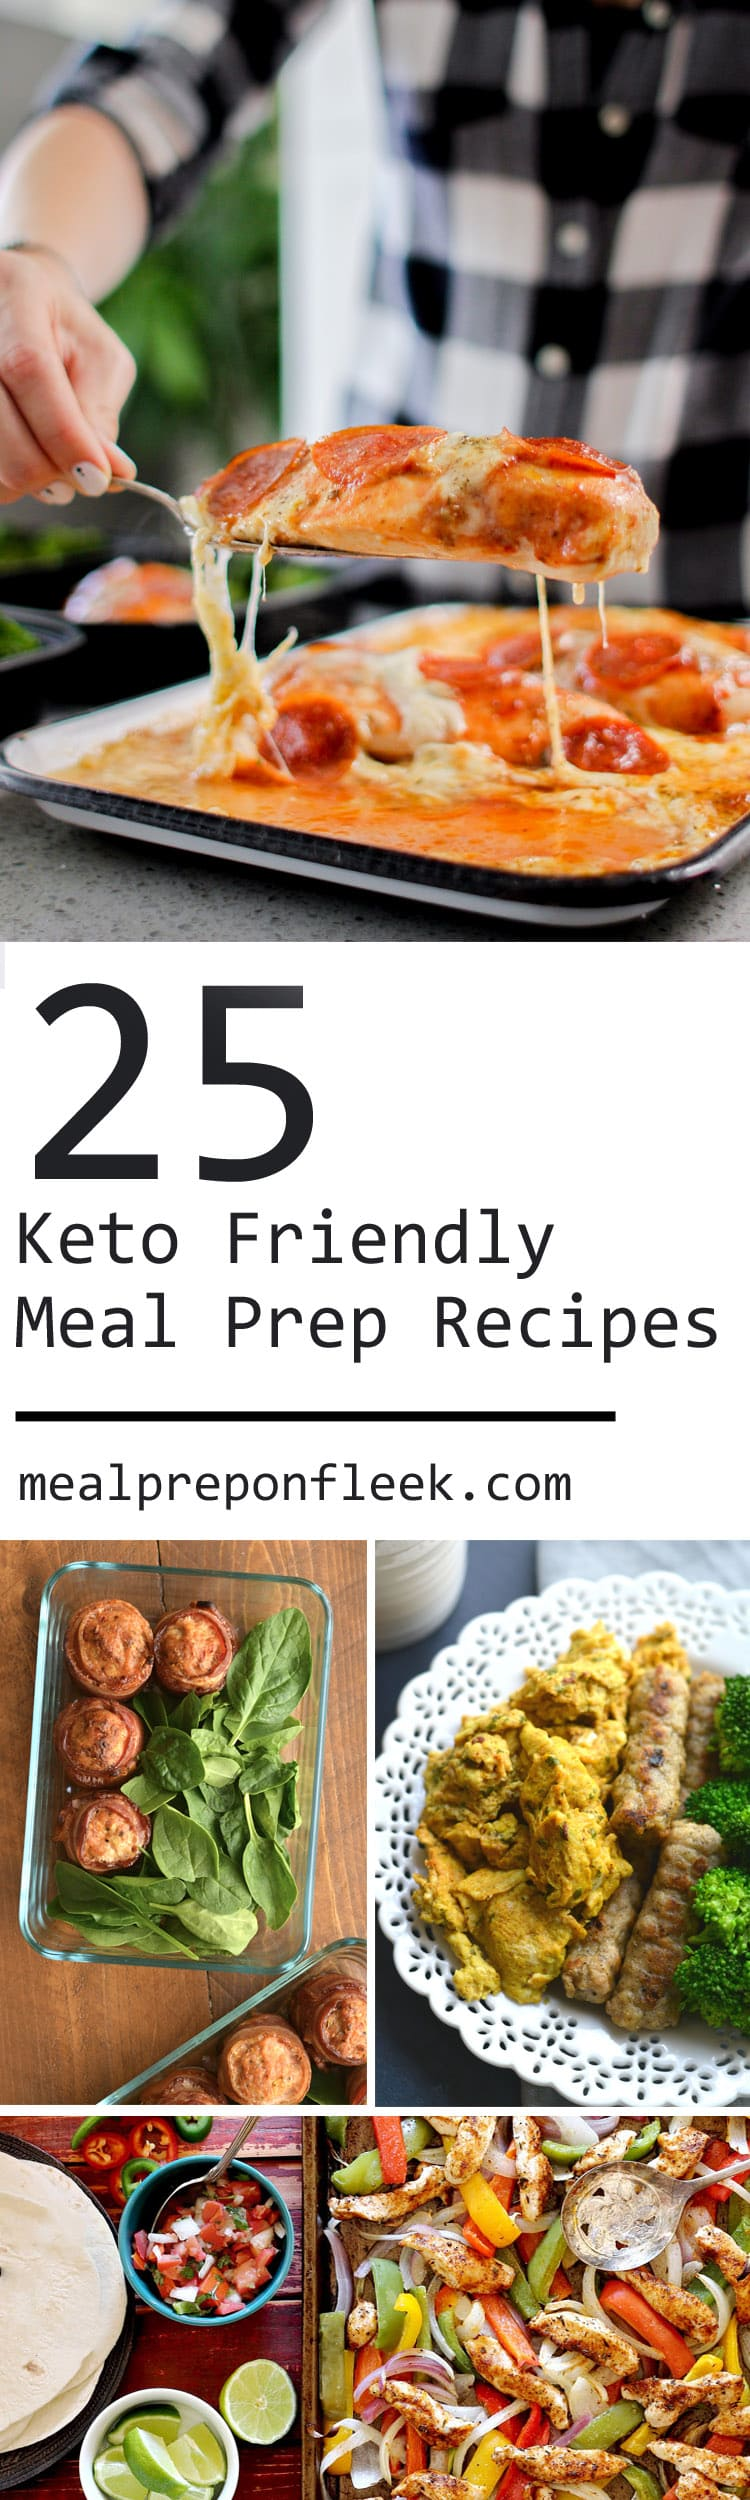 25 Amazing Keto Meal Prep Recipes Meal Prep On Fleek